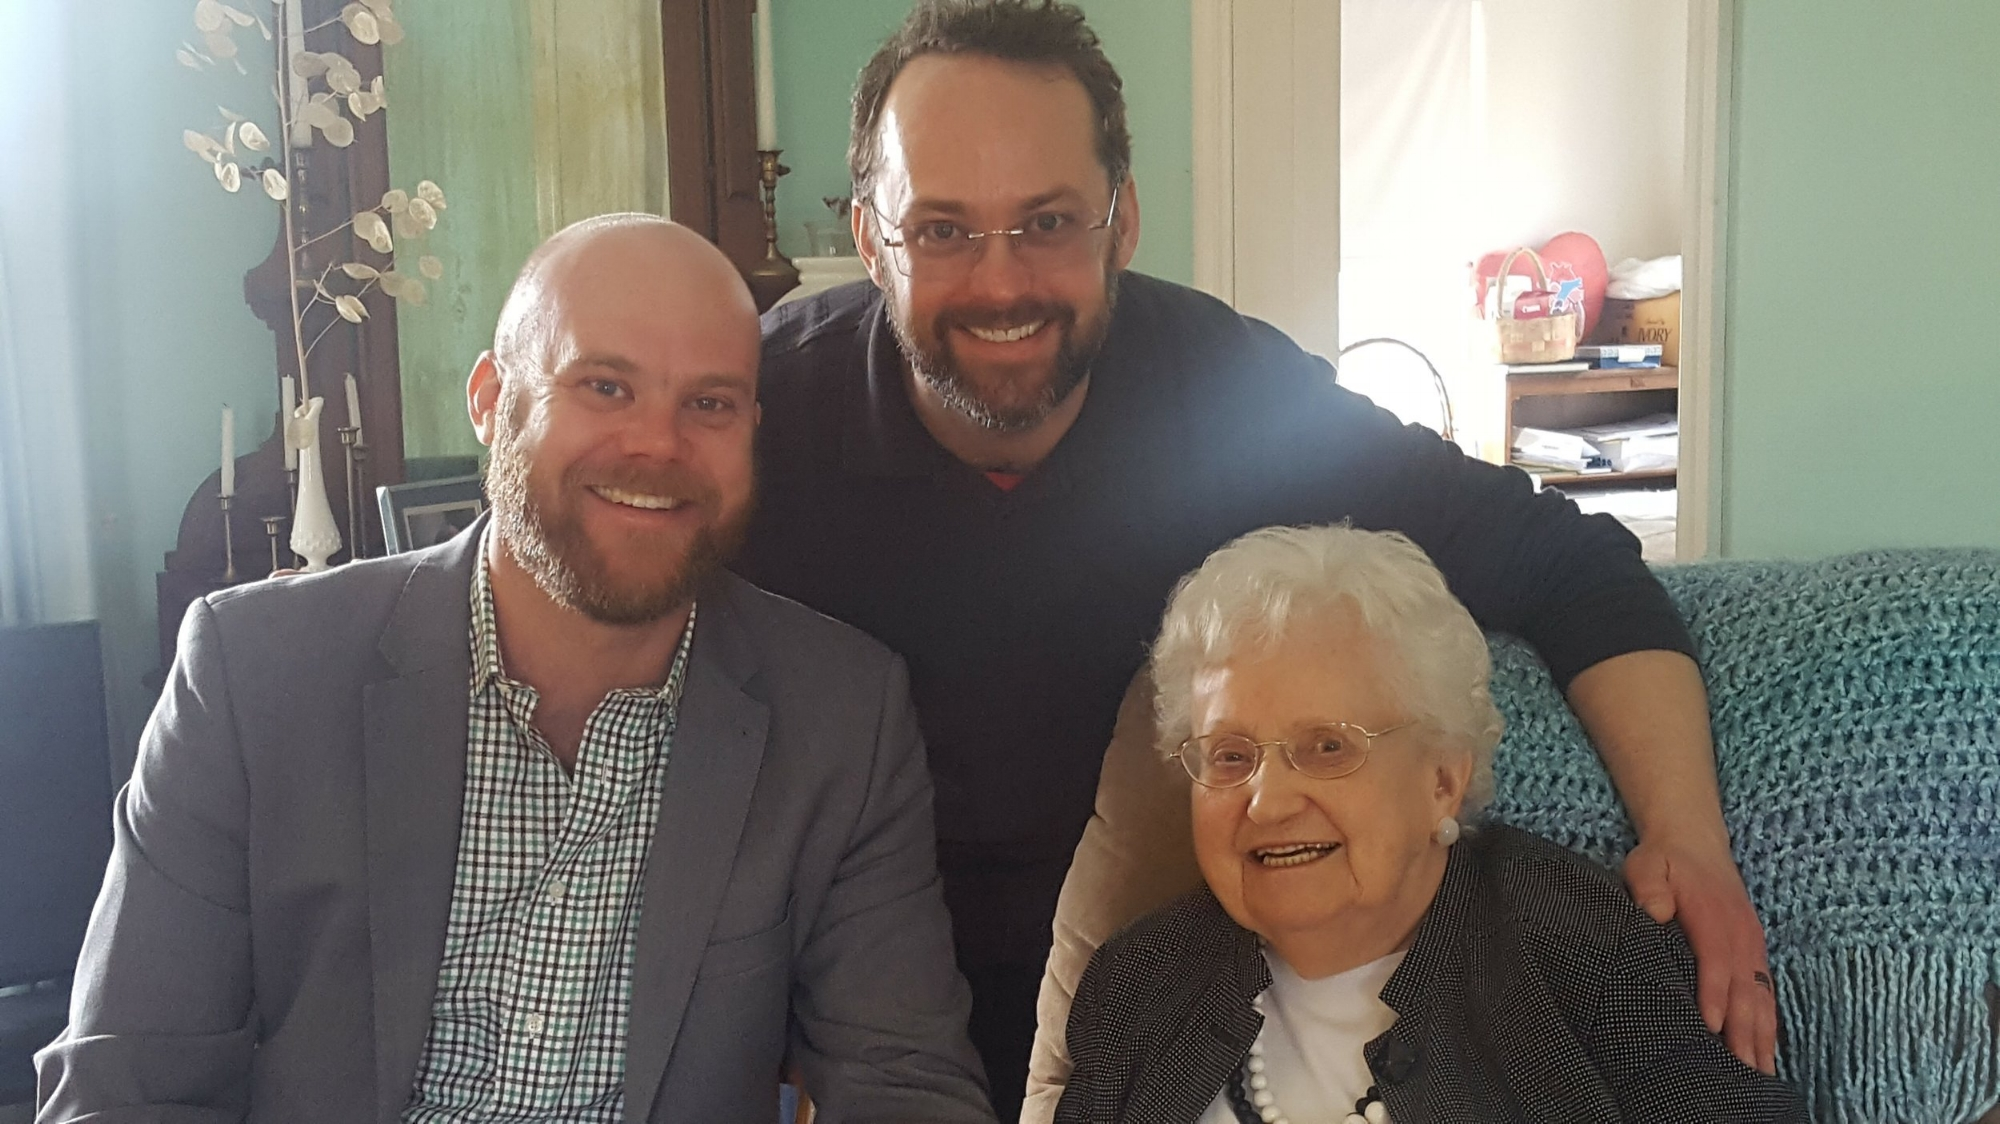 Me, my brother and the centenarian.